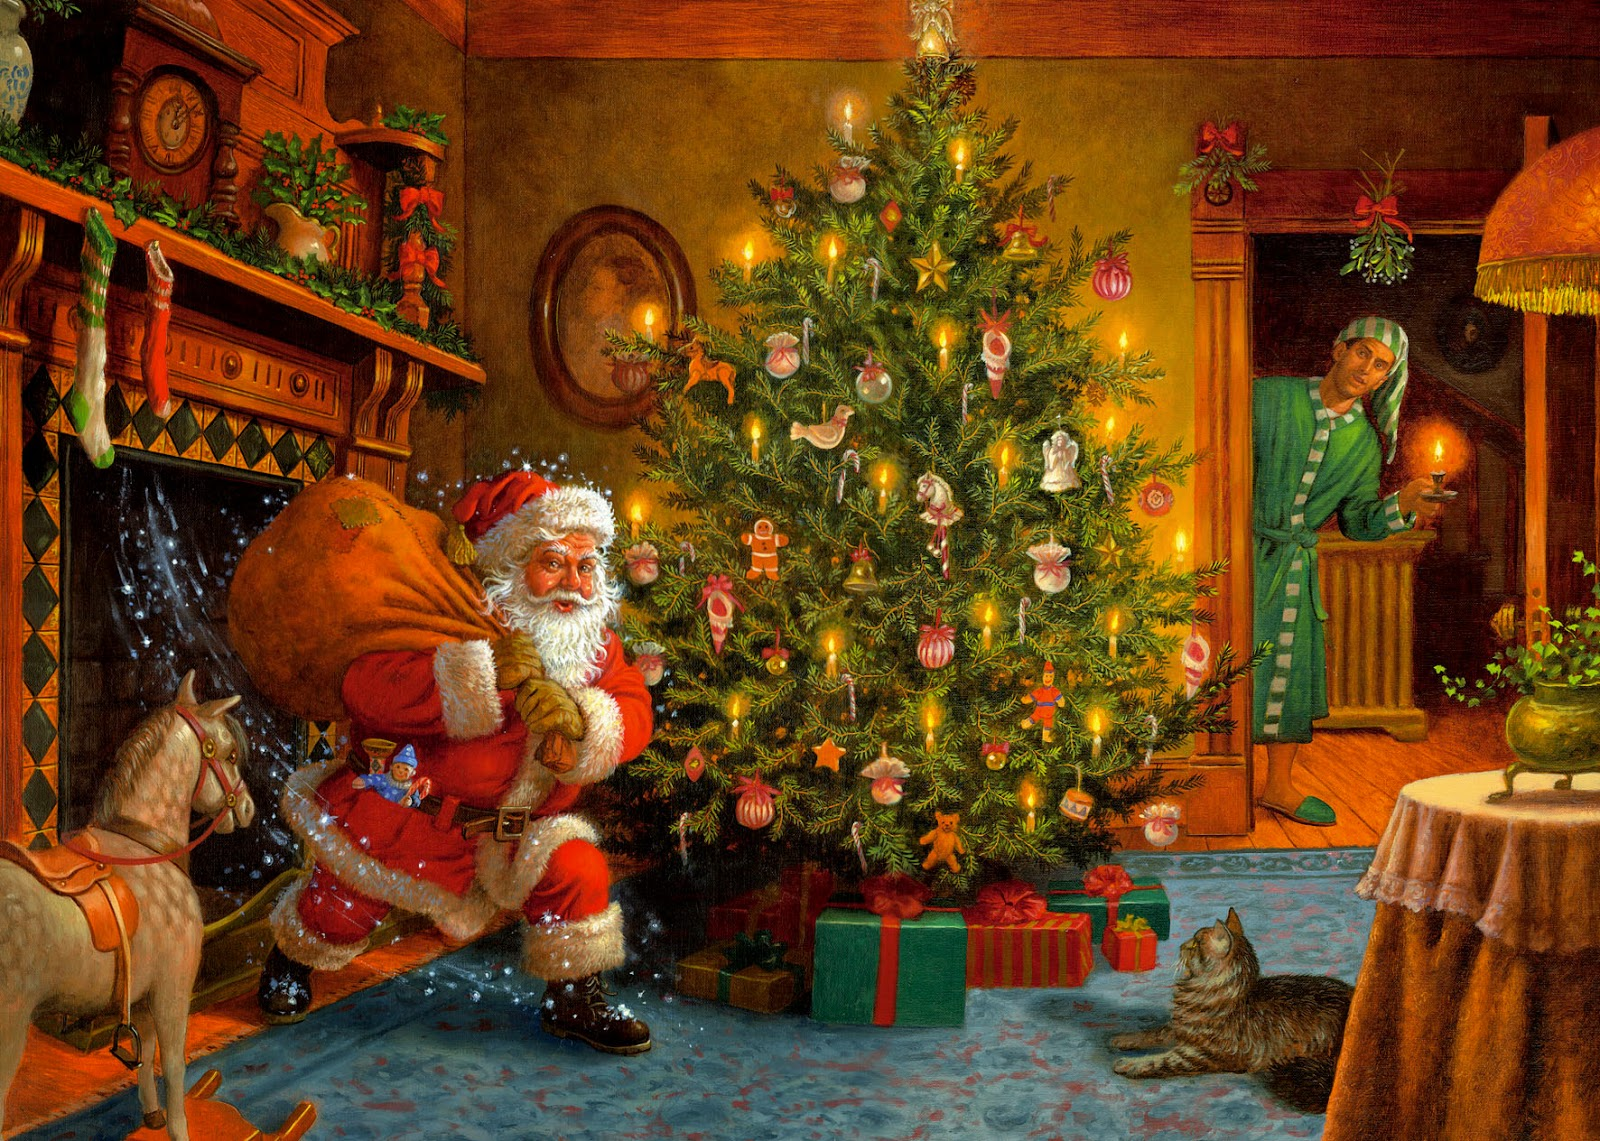 Santa-enters-house-through-fireplace-chimney-cartoon-image-picture-1772x1264.jpg